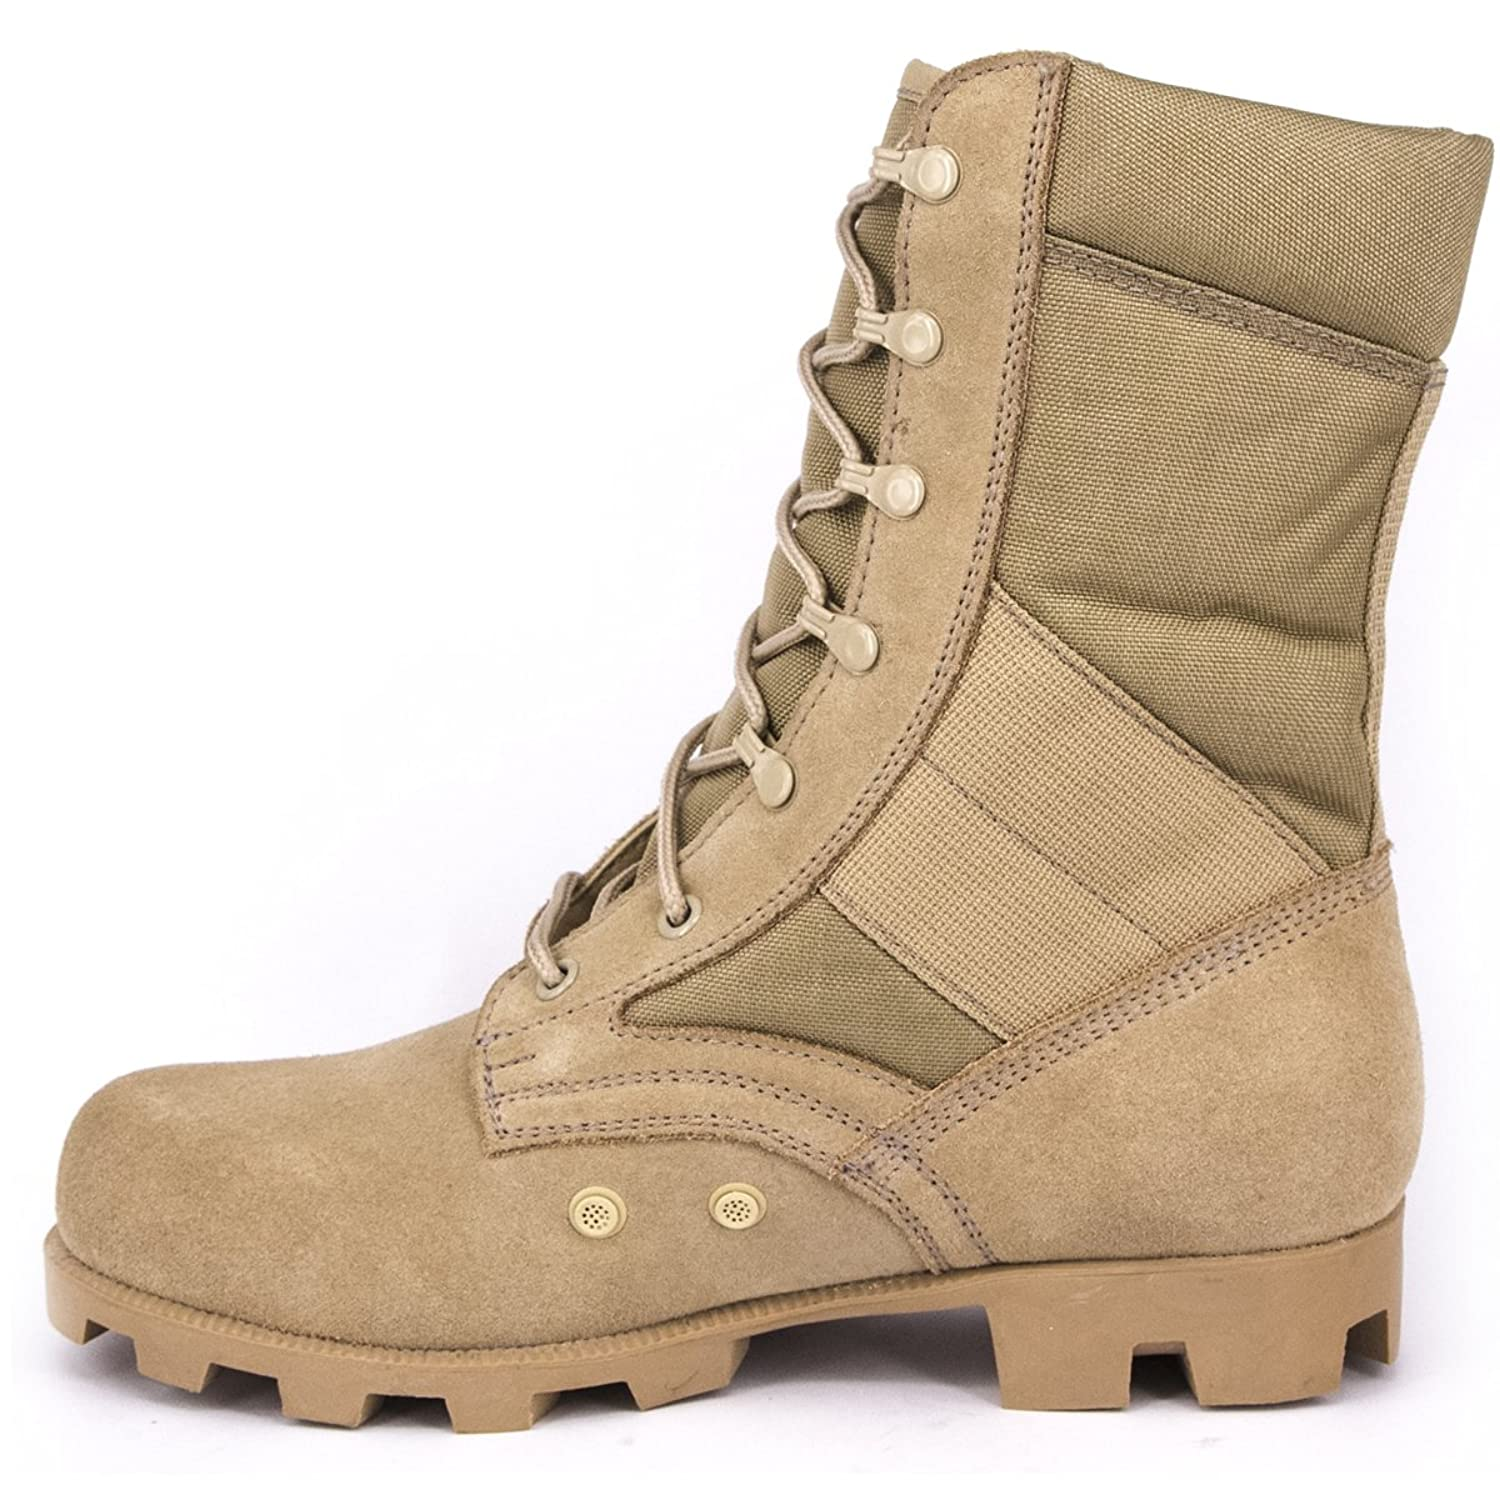 Men's Leather Military Jungle Water Resistant Combat Boots - DeluxeAdultCostumes.com